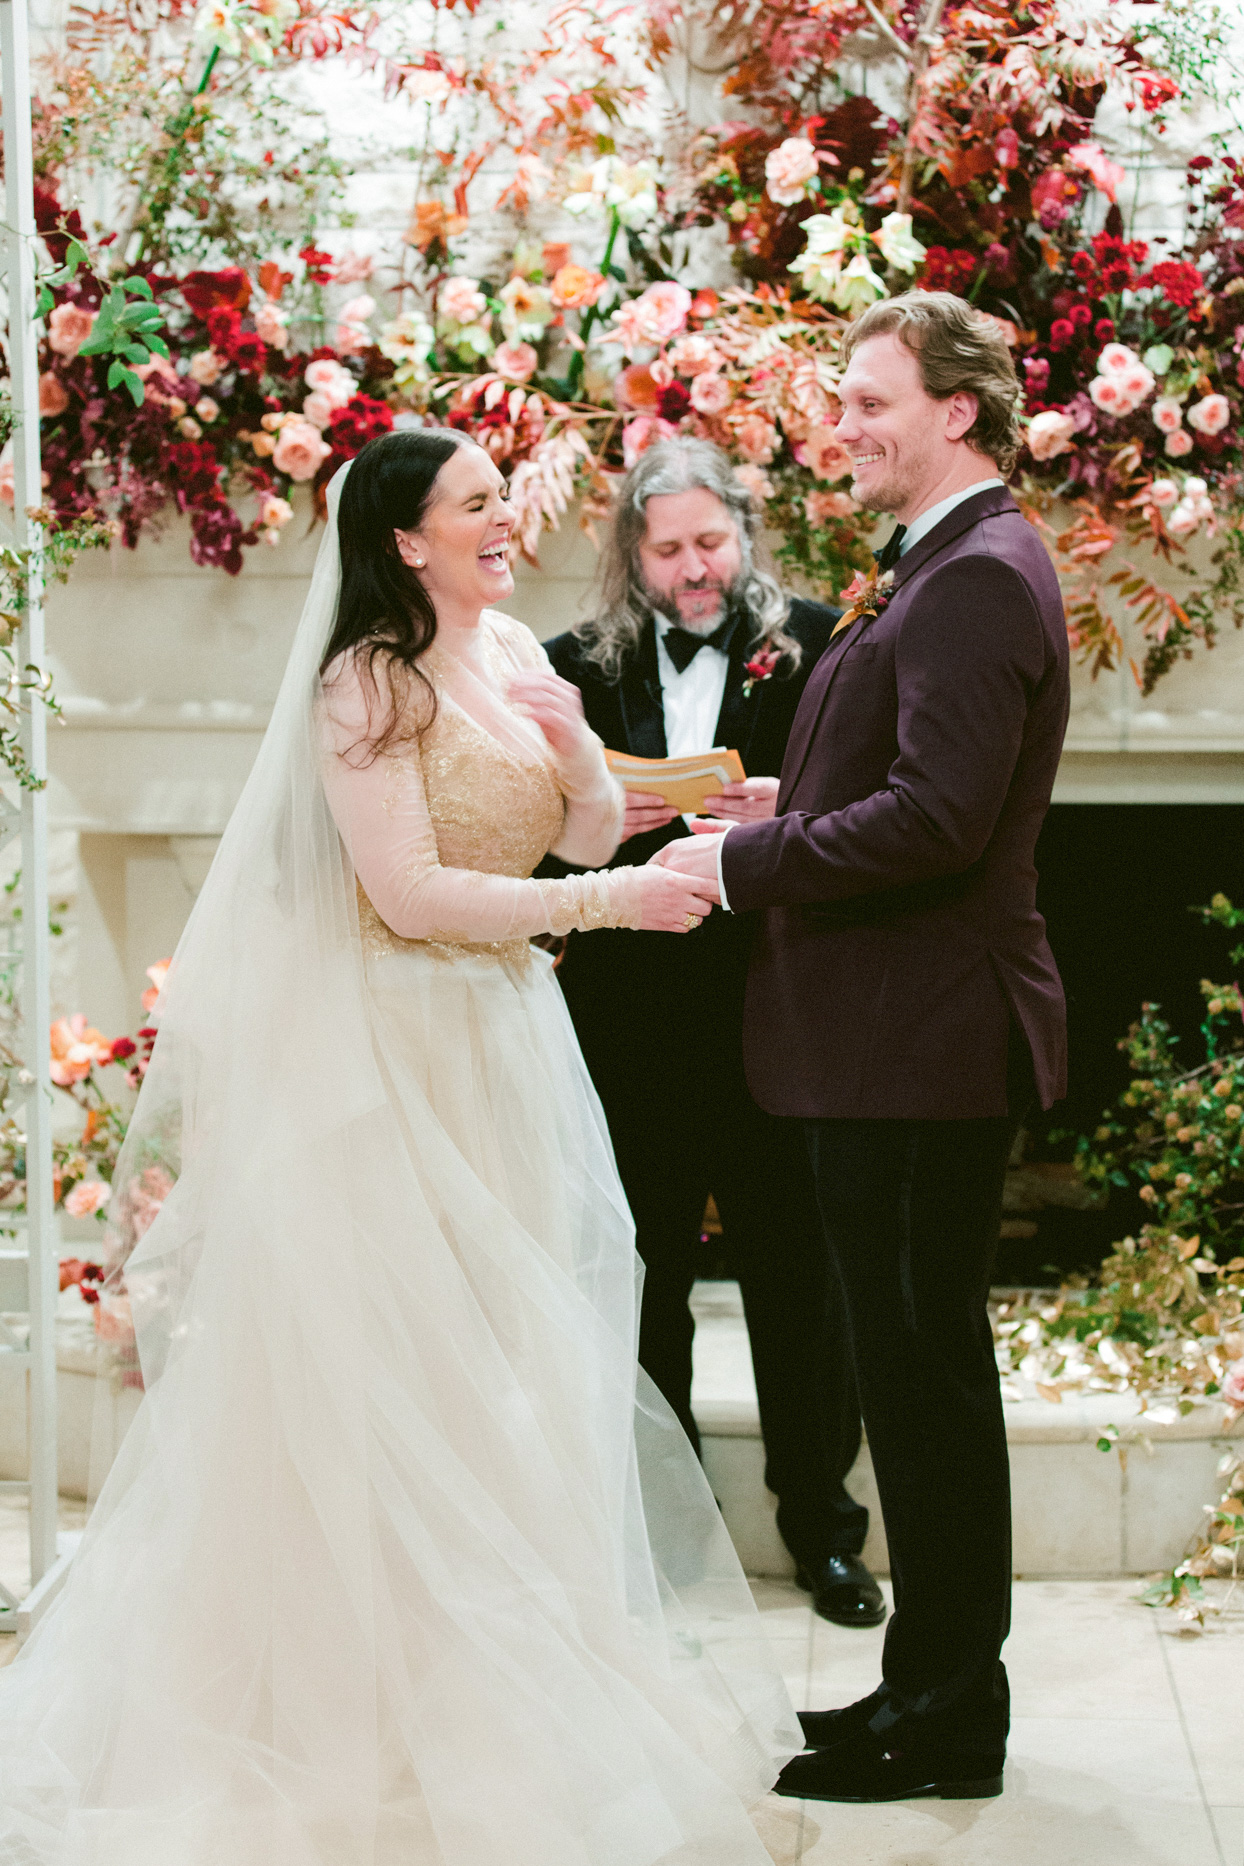 couple smiling and laughing during wedding ceremony vows